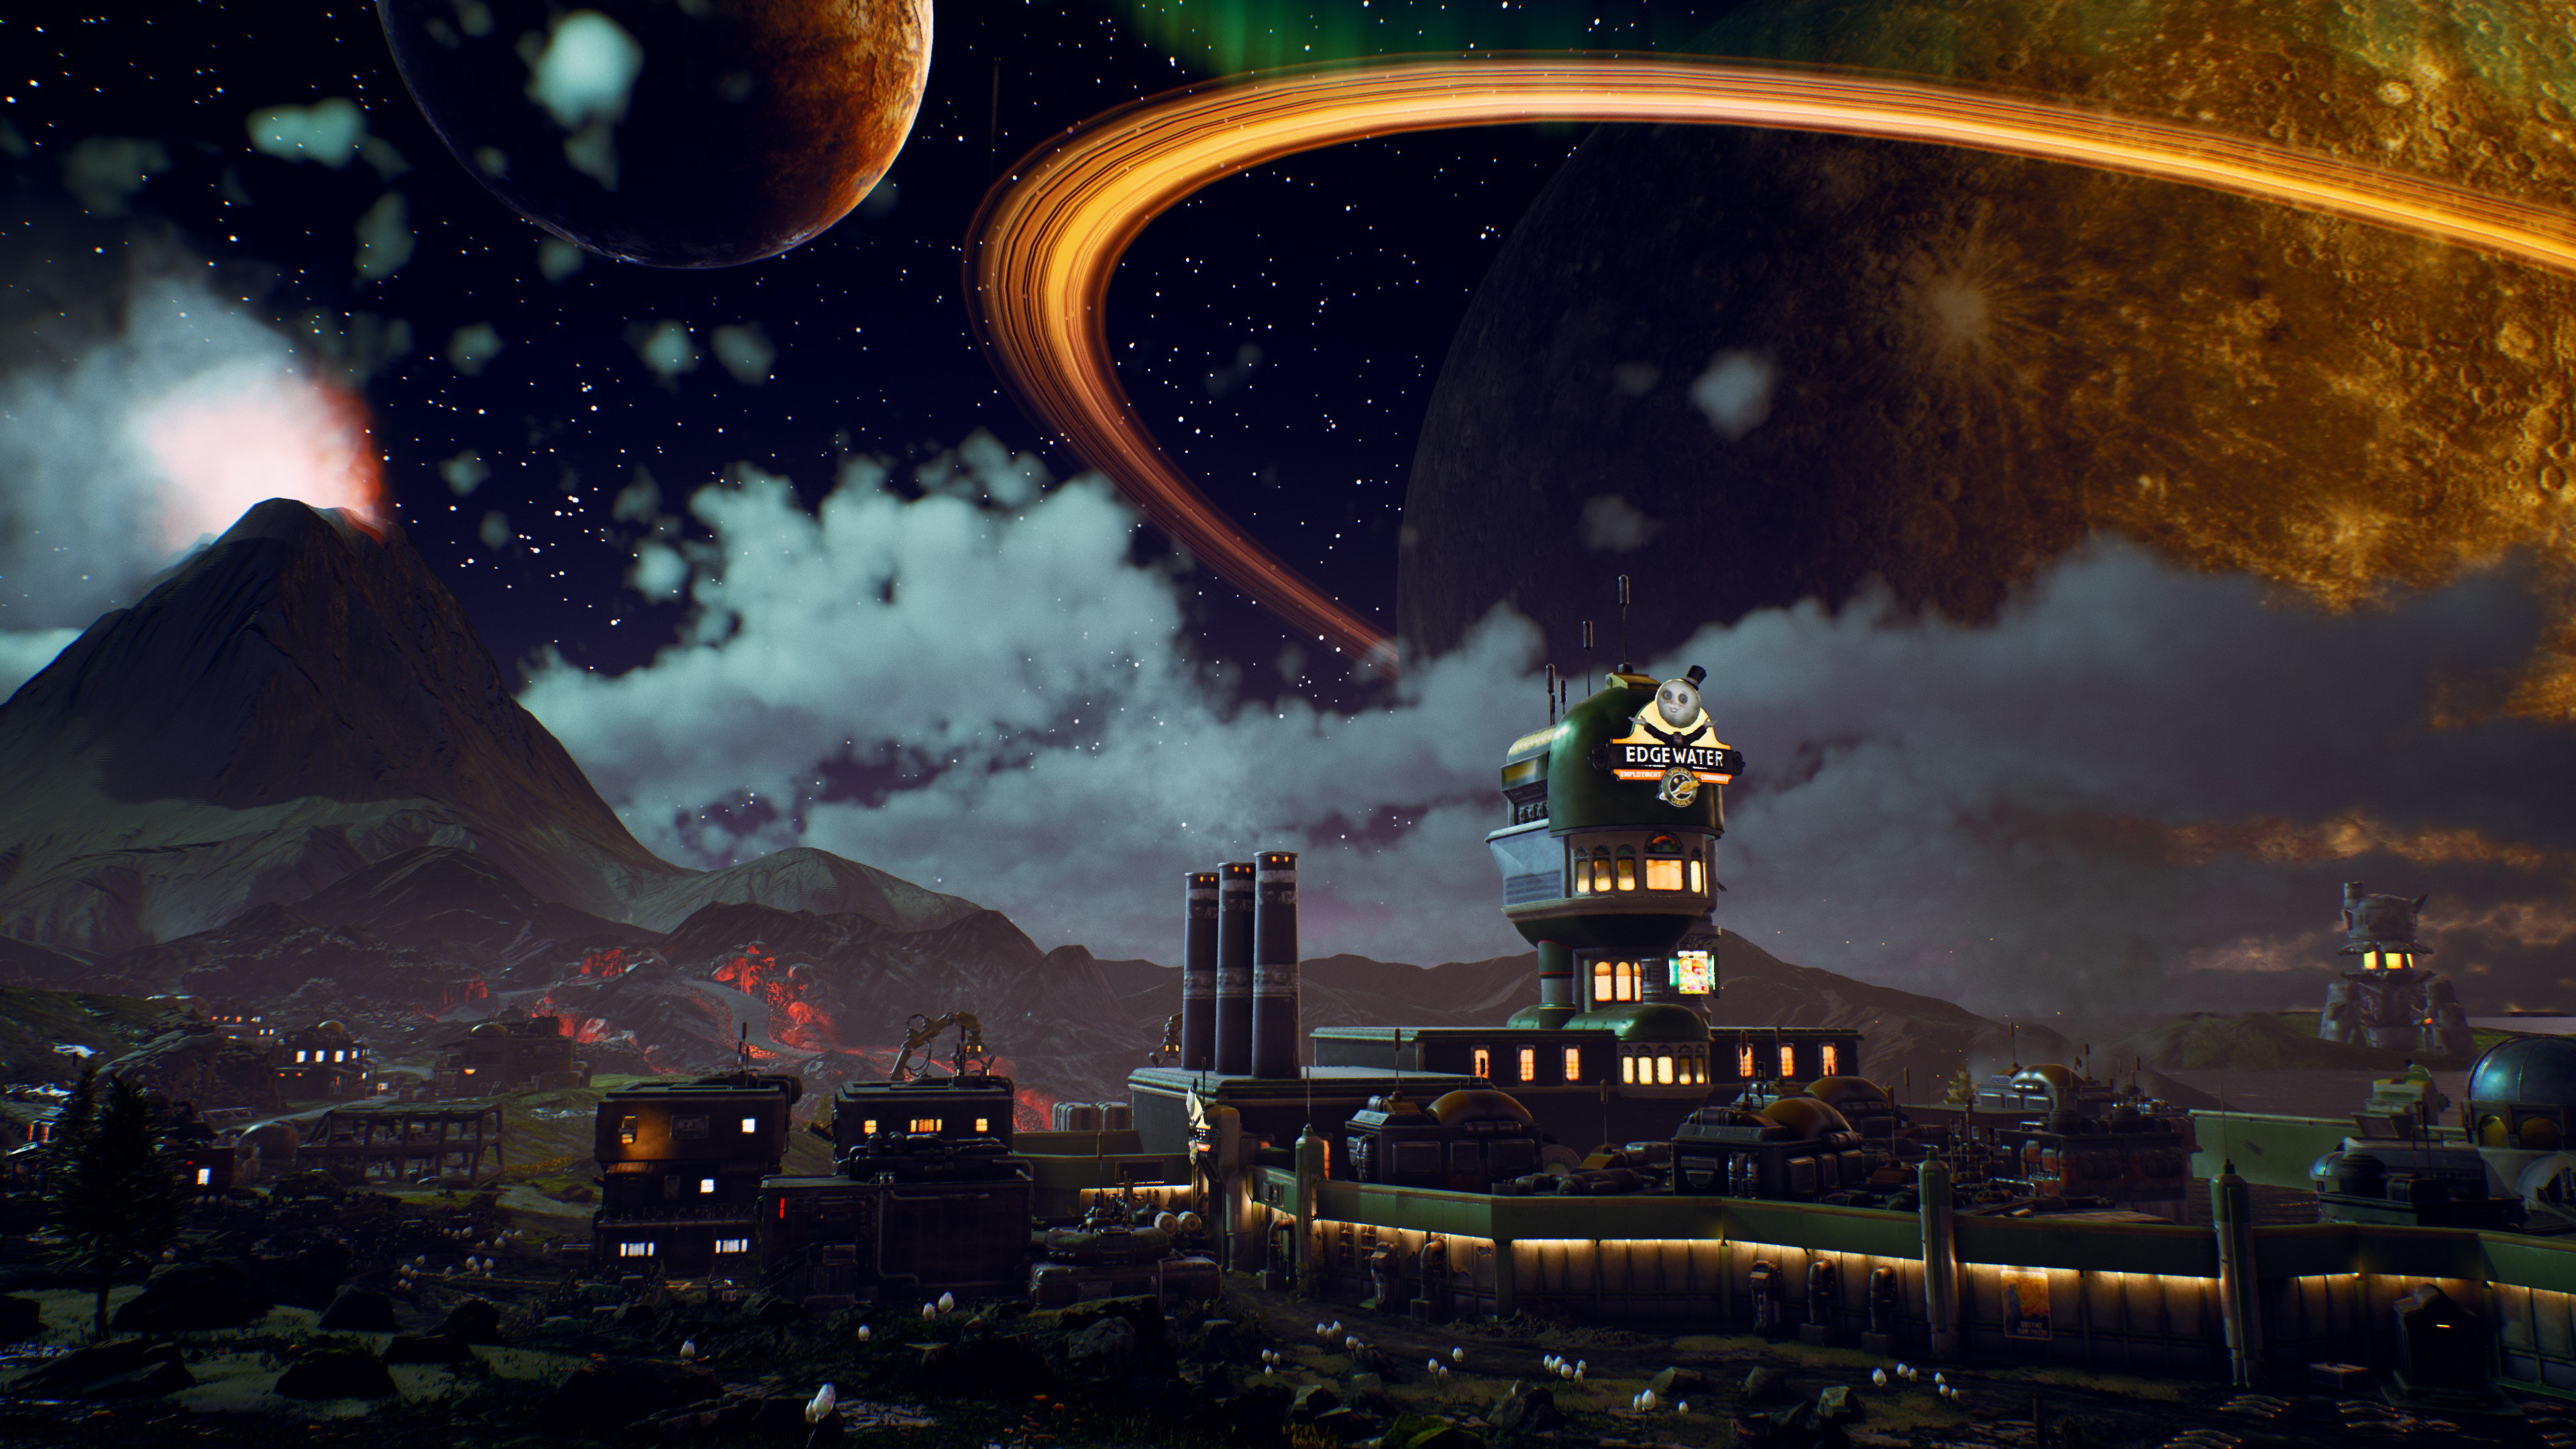 The Outer Worlds Wallpapers In Ultra Hd 4k Nuclearcoffee